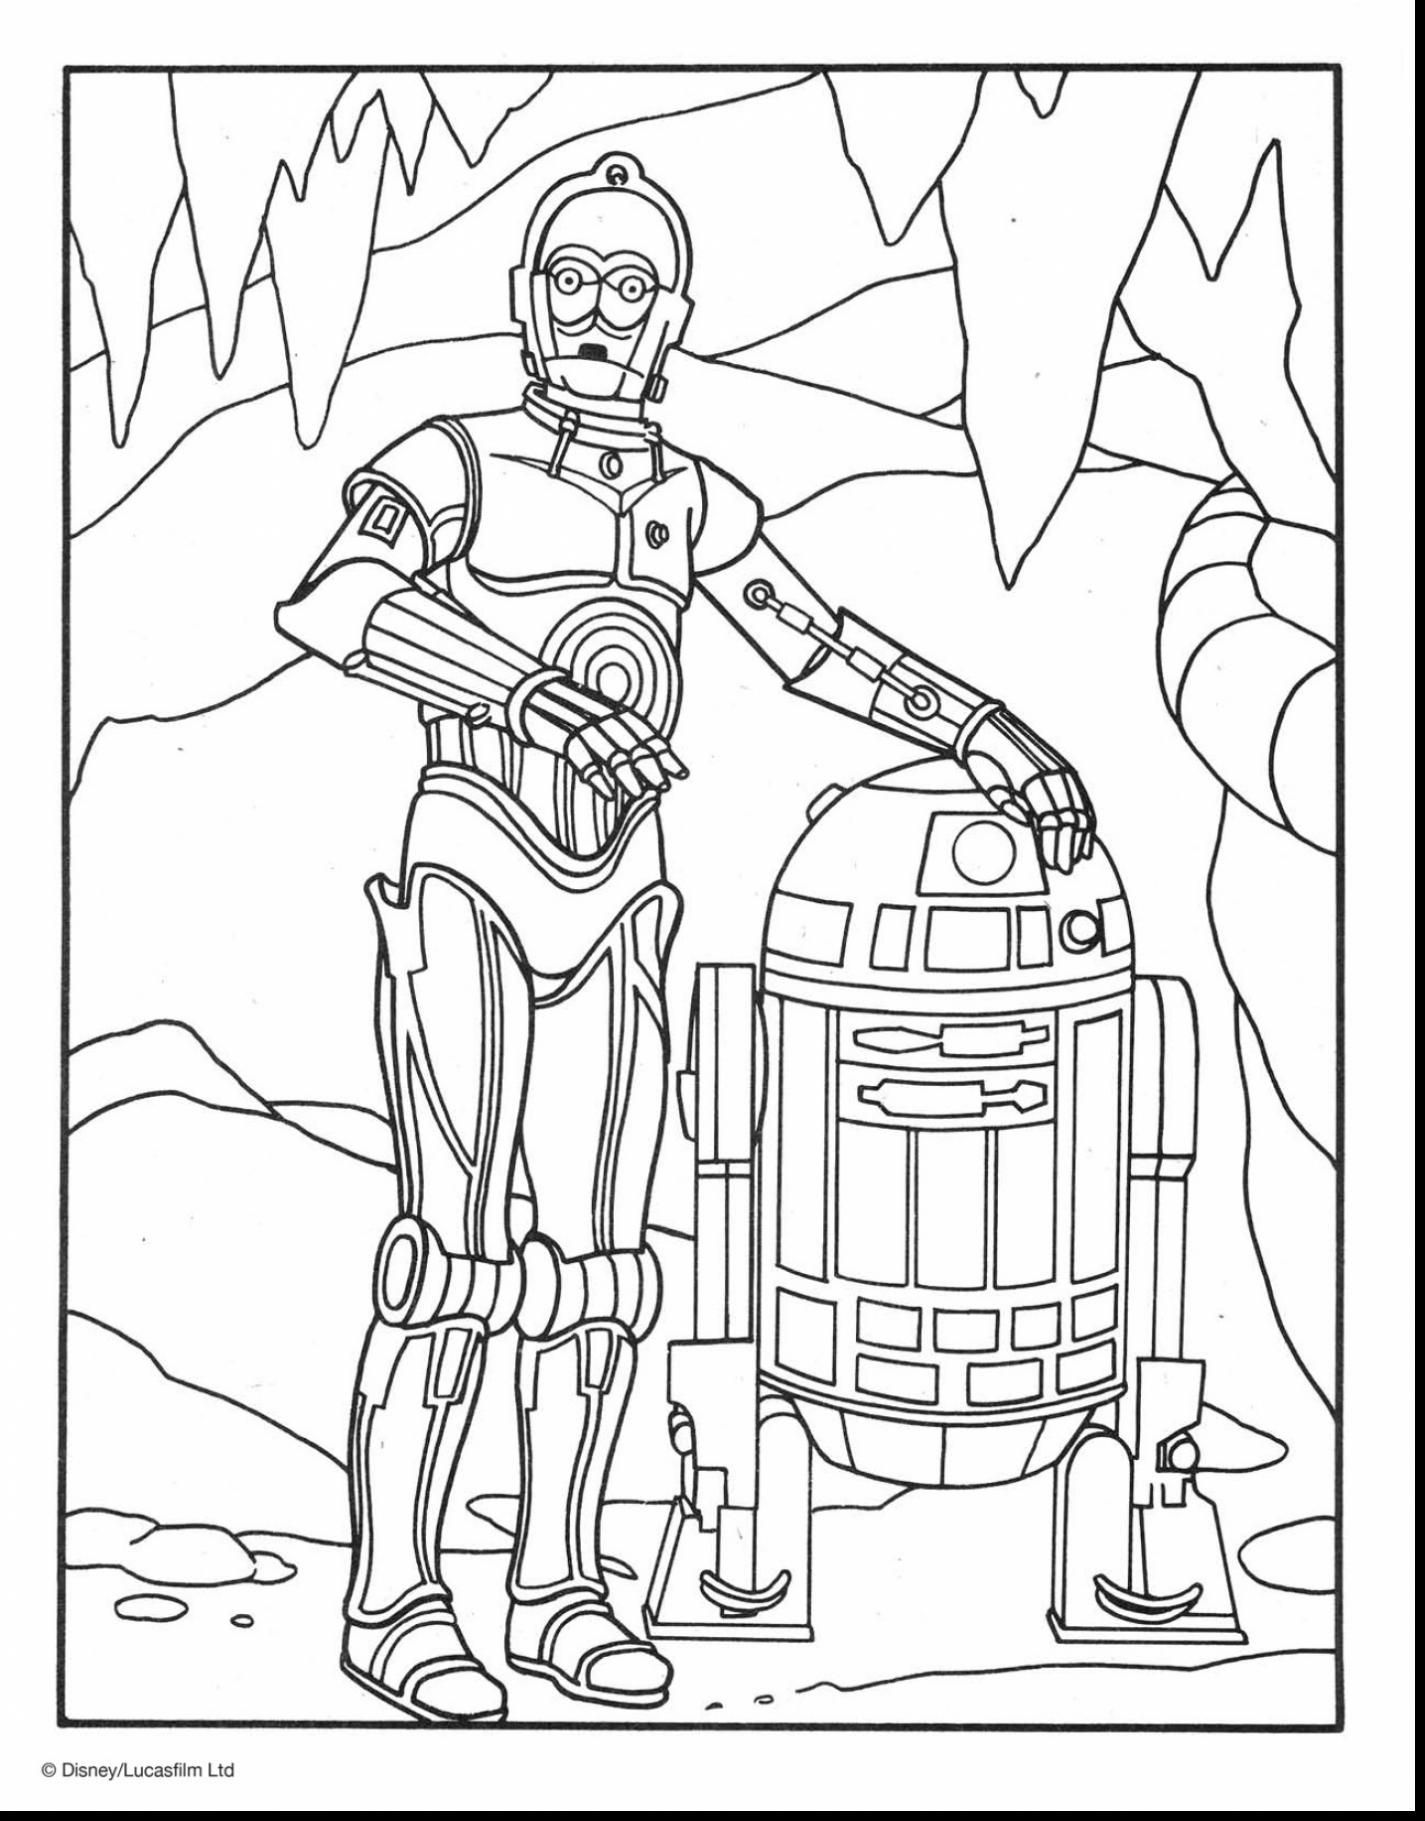 R2d2 Coloring Page 12 Jpg 1425 1821 Coloring Pages Coloring